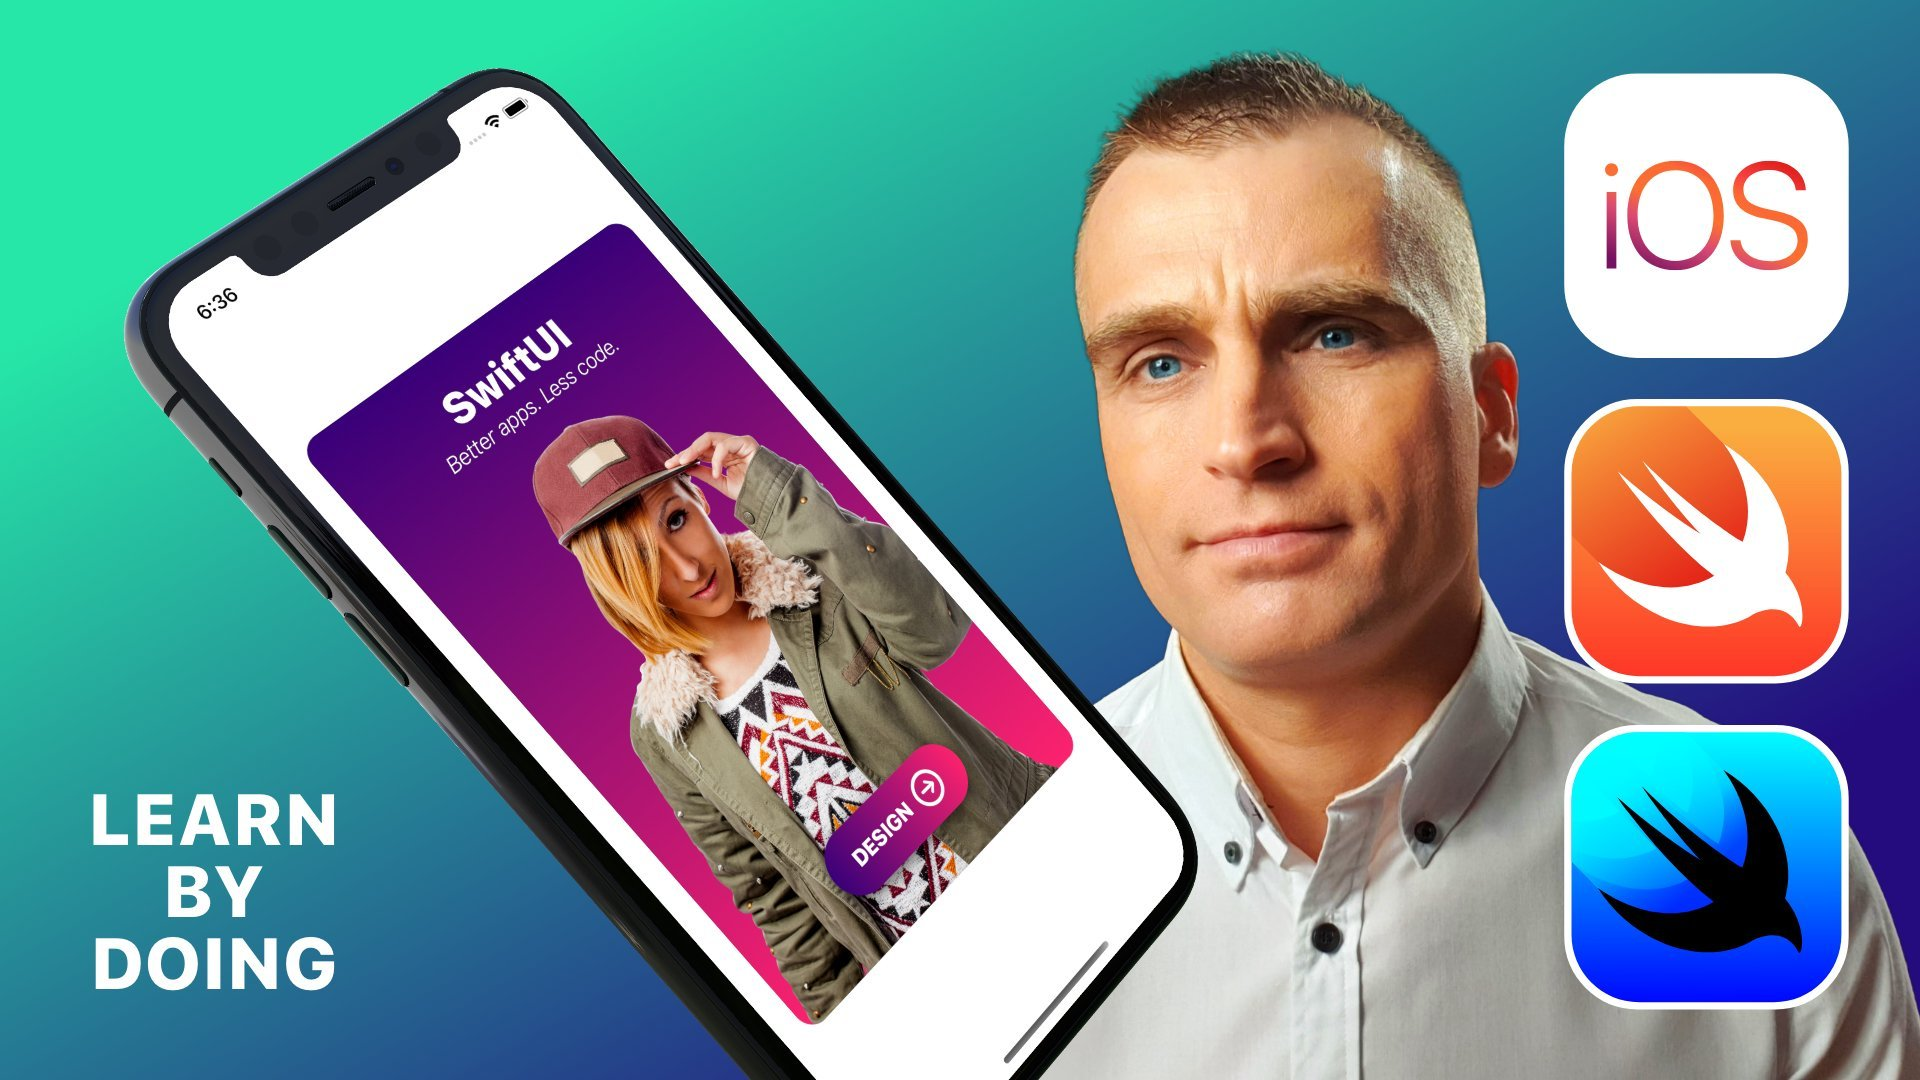 SwiftUI Basics: Let's create an awesome iOS card app UI/UX design with SwiftUI in Xcode